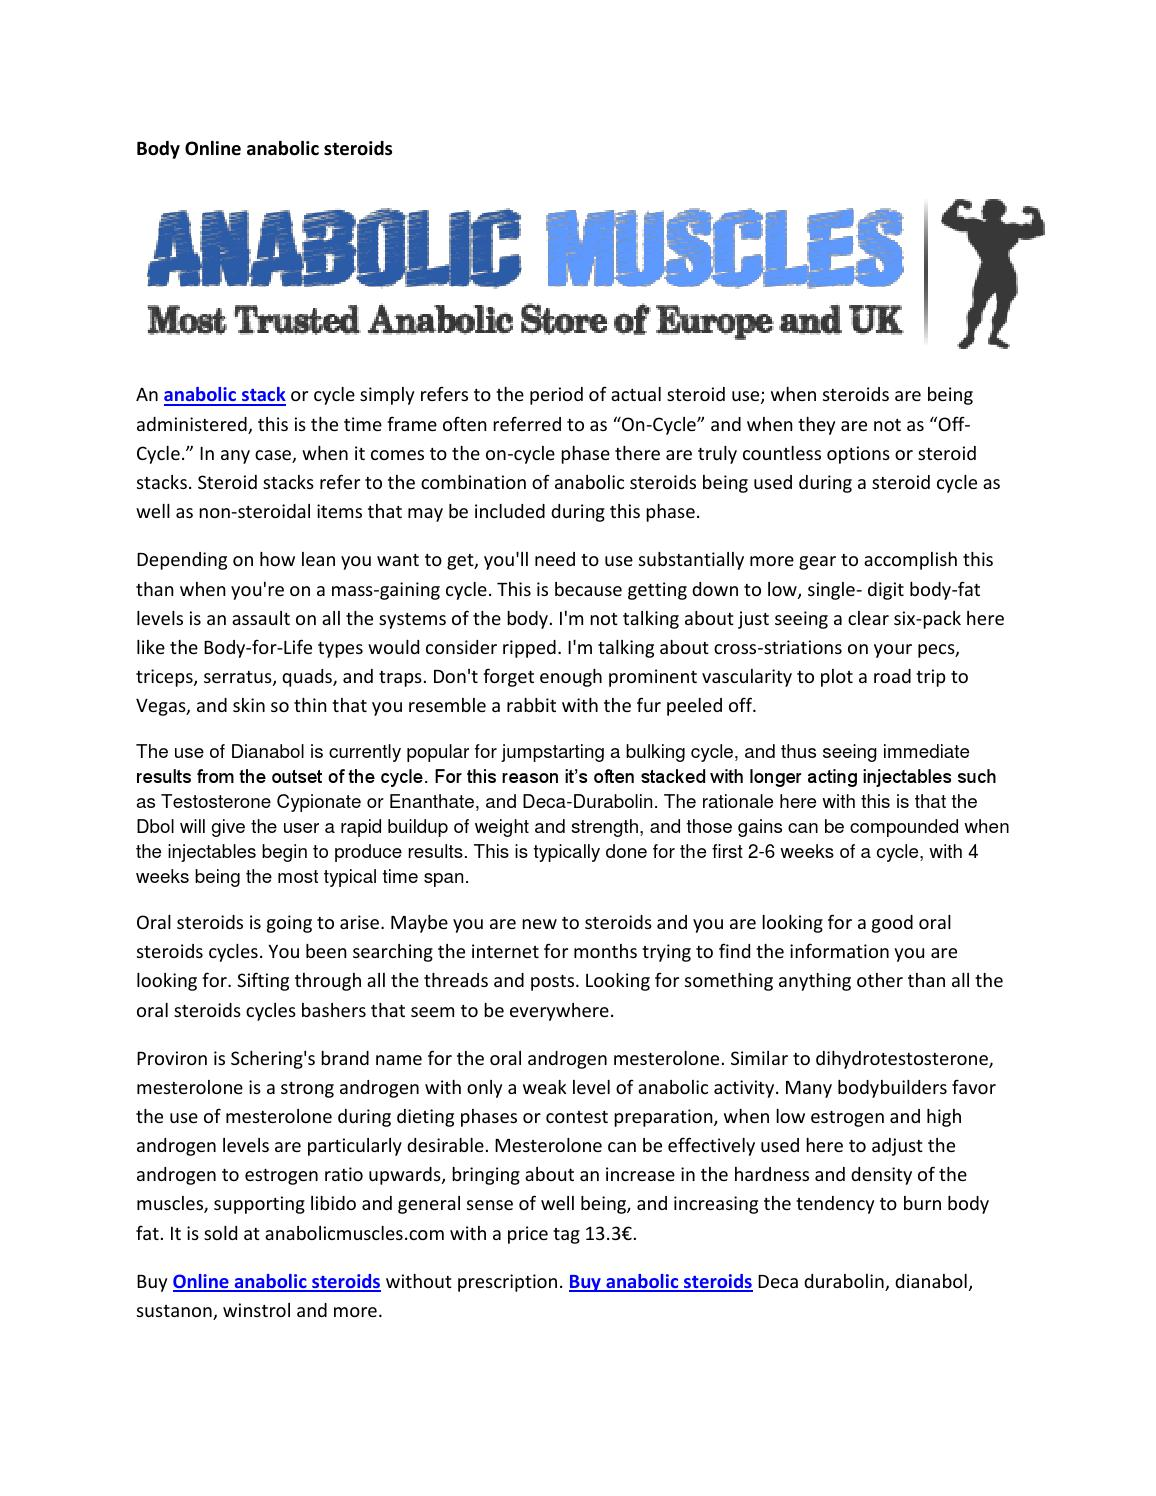 Body online anabolic steroids by anabolicmuscles02 - issuu